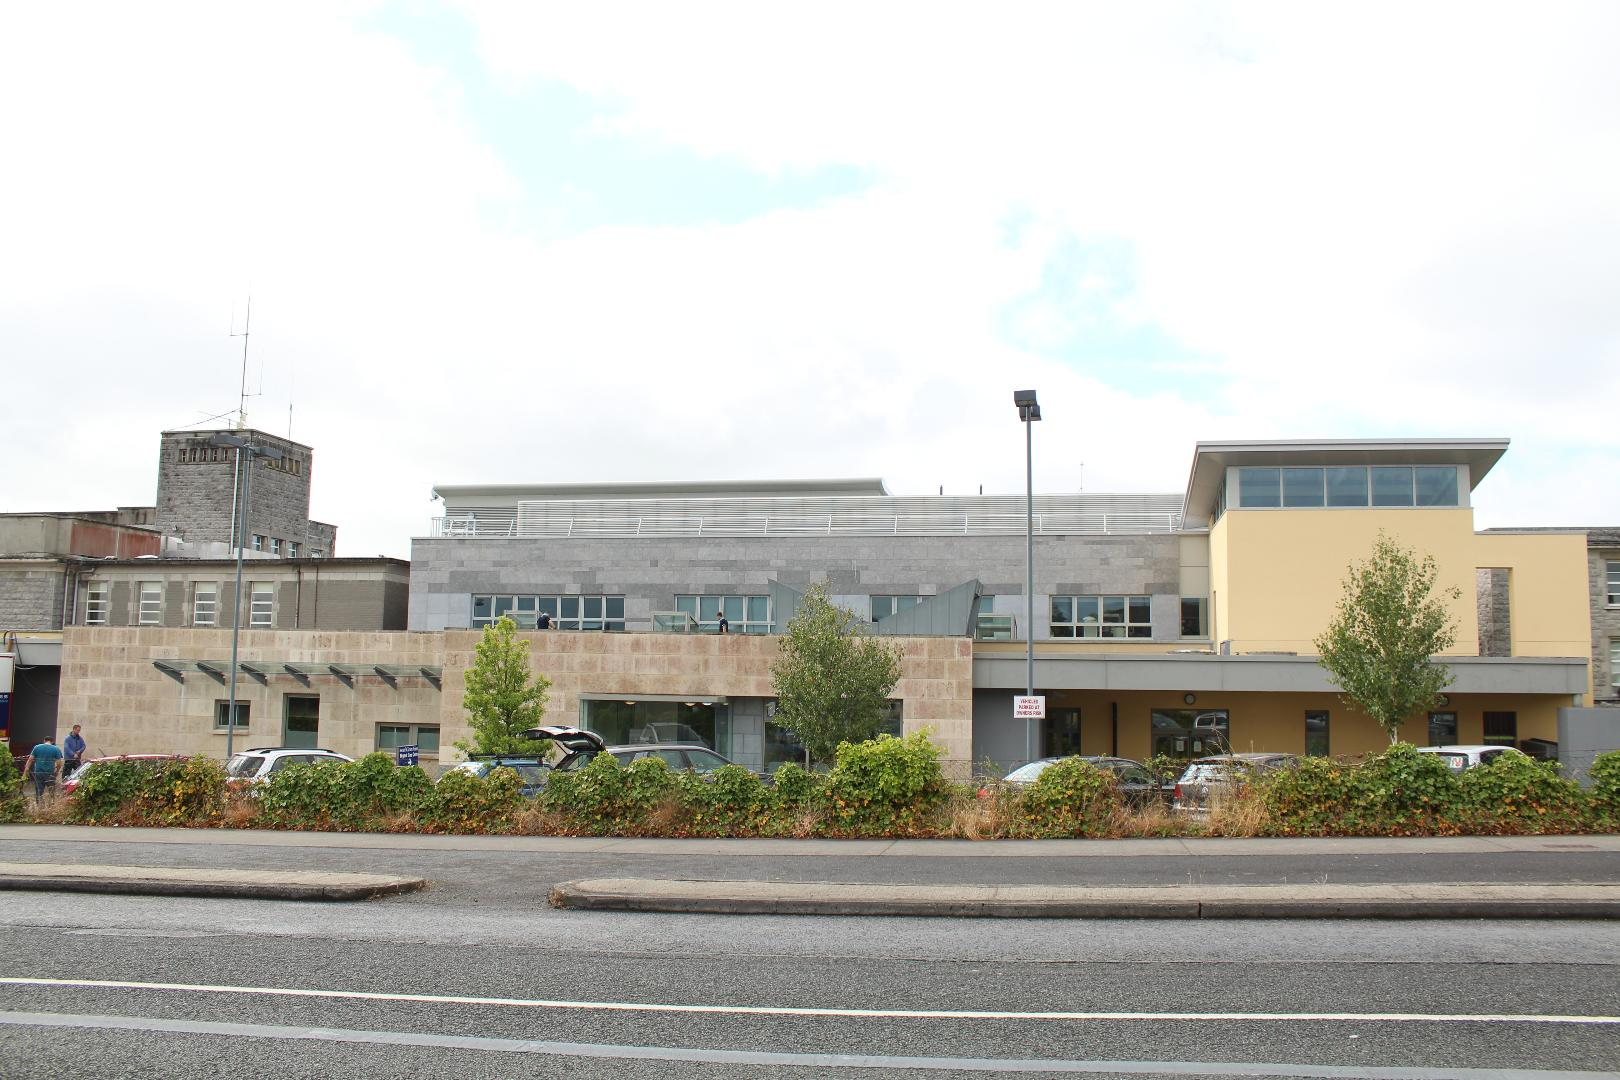 Photo of Update on €8m Pallative Care Centre